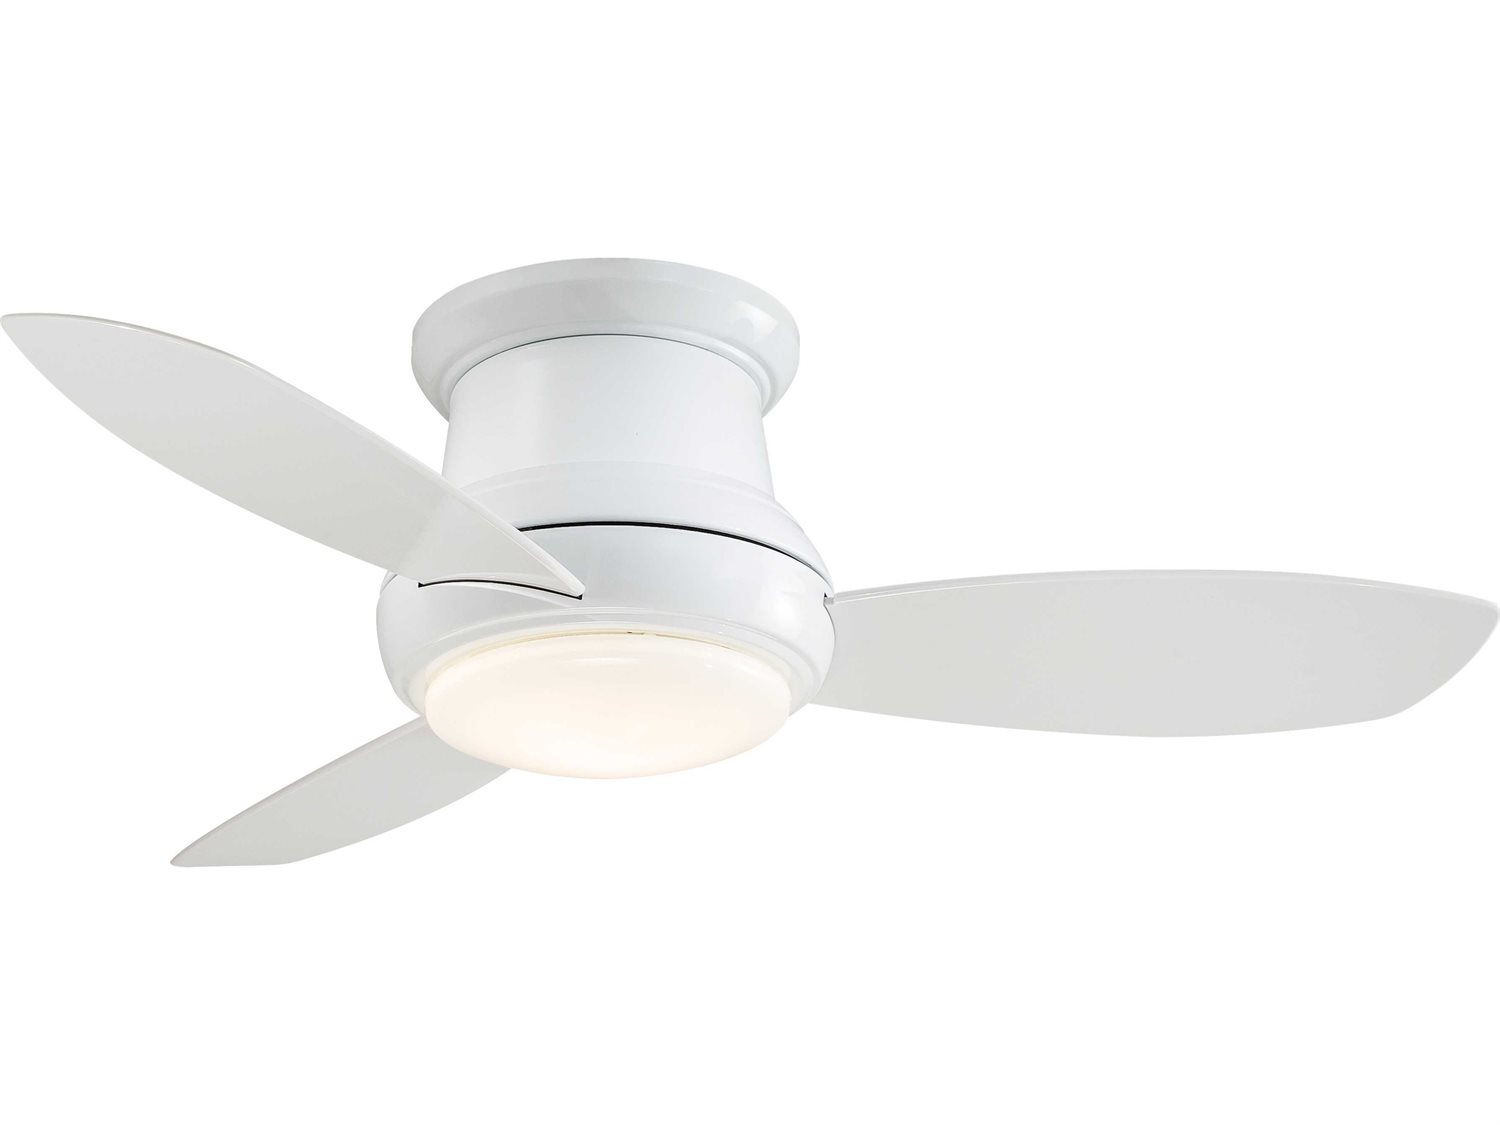 Minka Aire Concept Ii White 44 Wide Led Indoor Ceiling